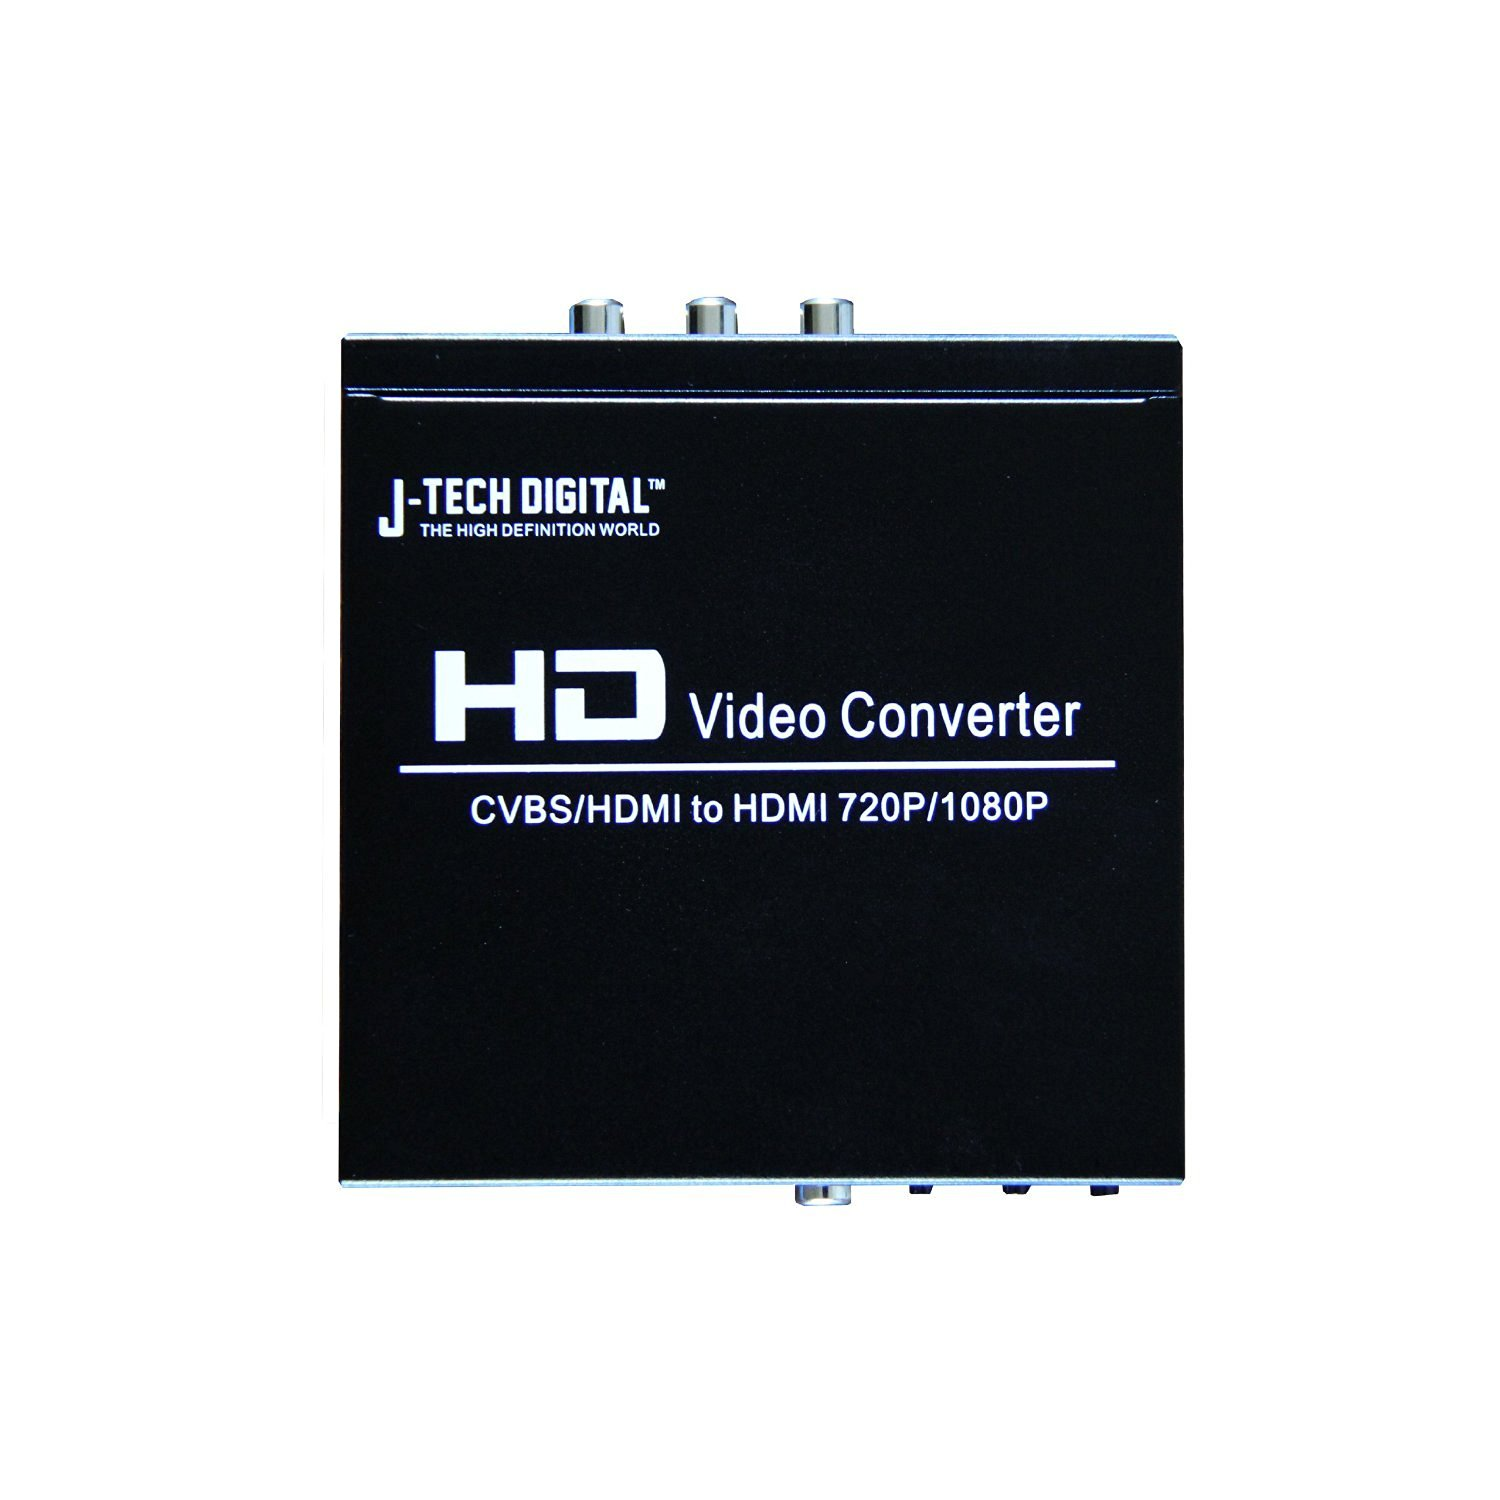 J-Tech Digital (Registered US Trademark) Premium Quality PAL HDMI / Composite to NTSC HDMI 50/60 Hz Multi-System Digital Audio Video Converter - Up to 1080p/720p Upscaling Dual Voltage (110/220V Worldwide Use)